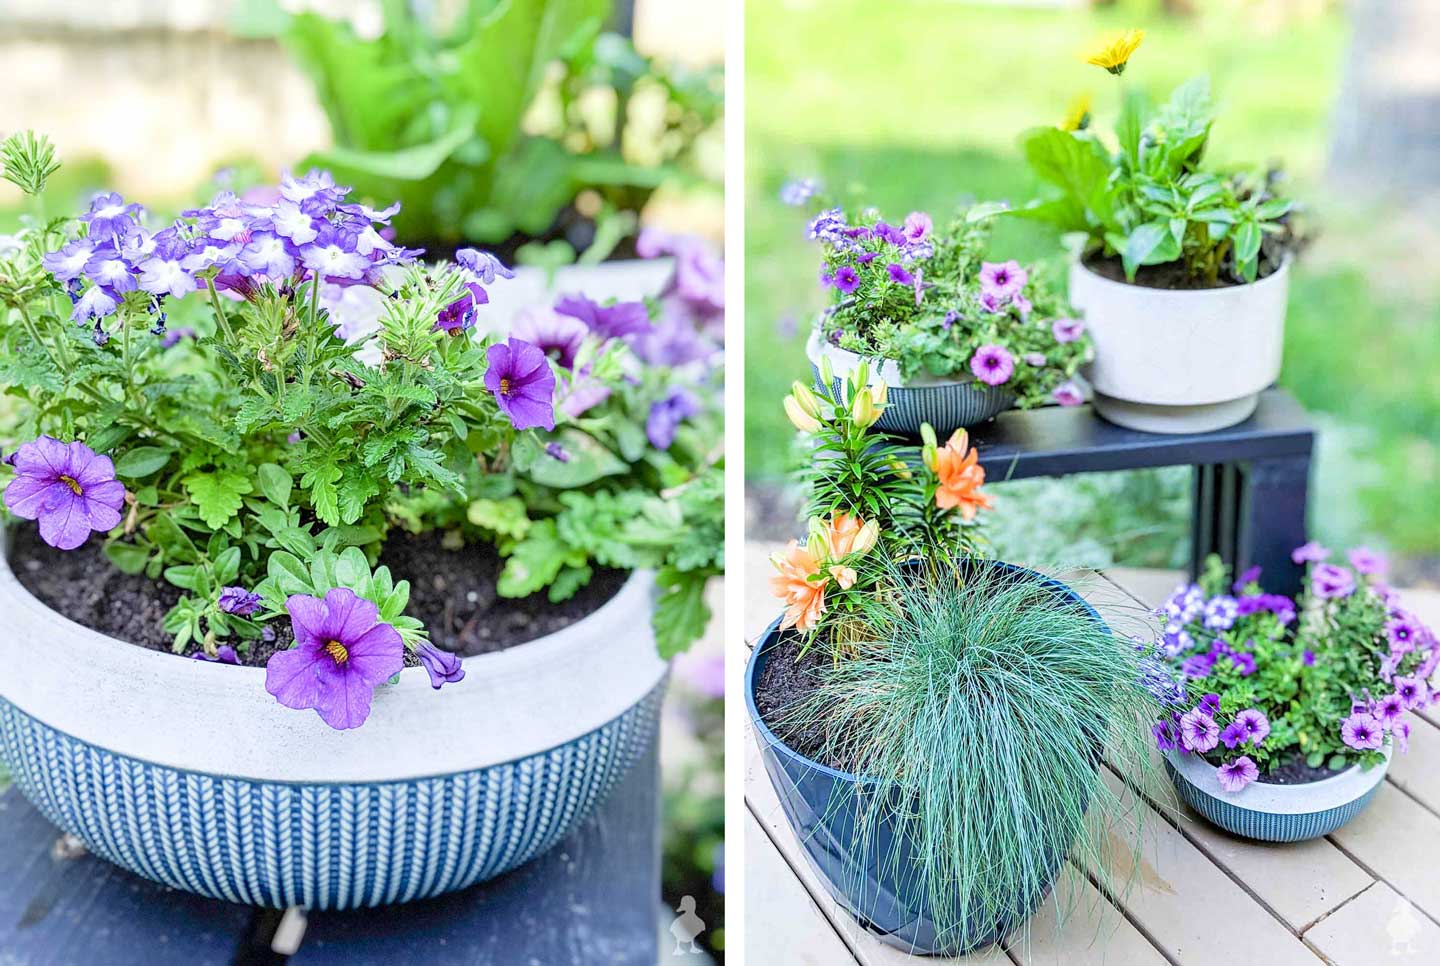 purple confetti mix and new planters for the deck